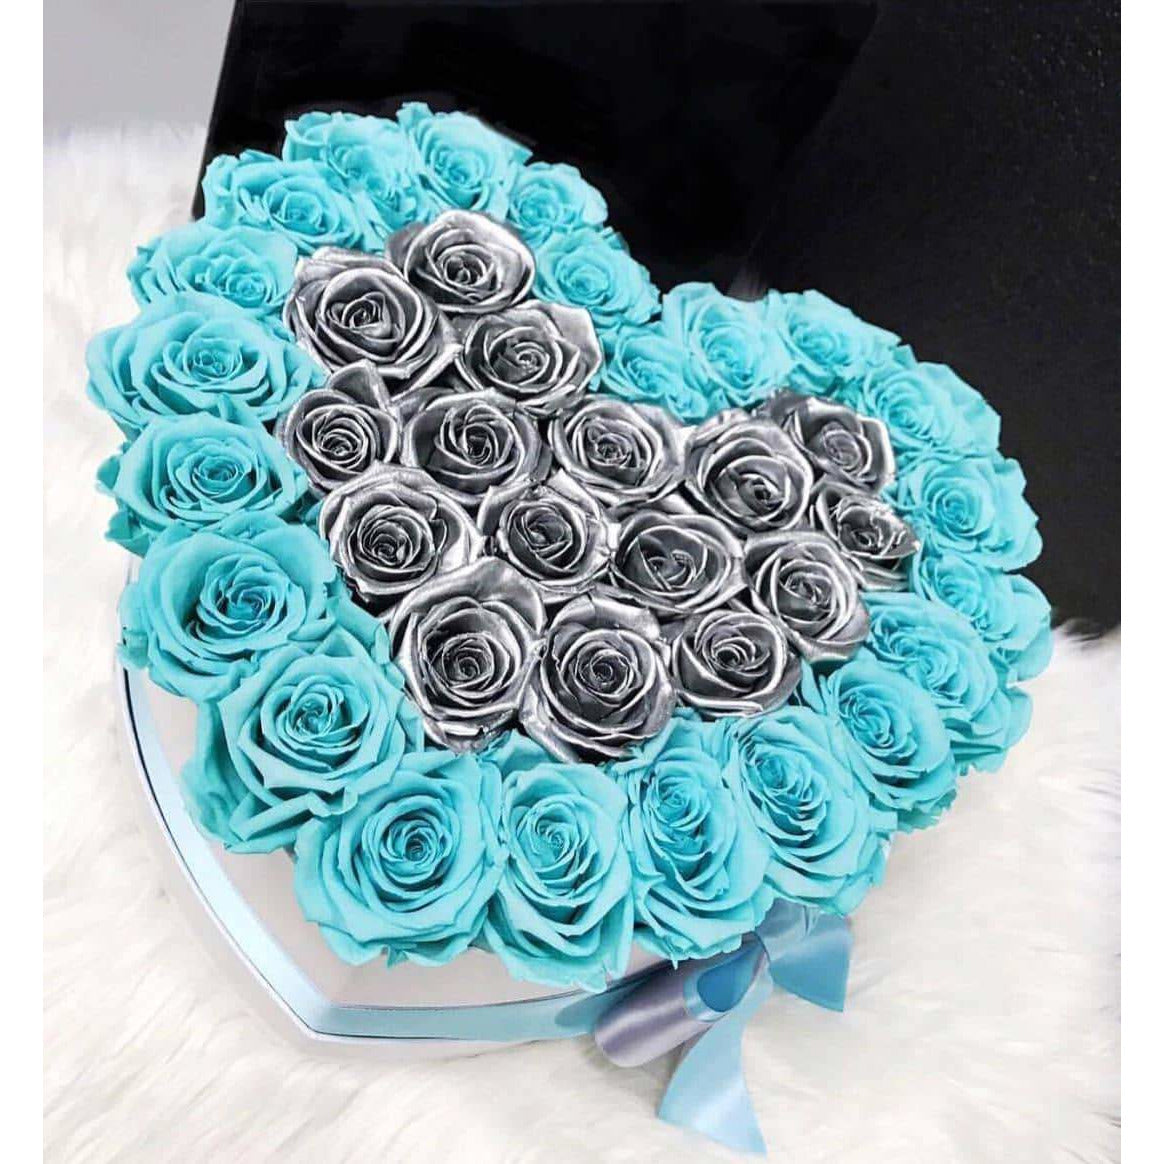 Tiffany Blue & Moonlight Silver Roses That Last A Year - Love Heart Rose Box - Palatial Petals